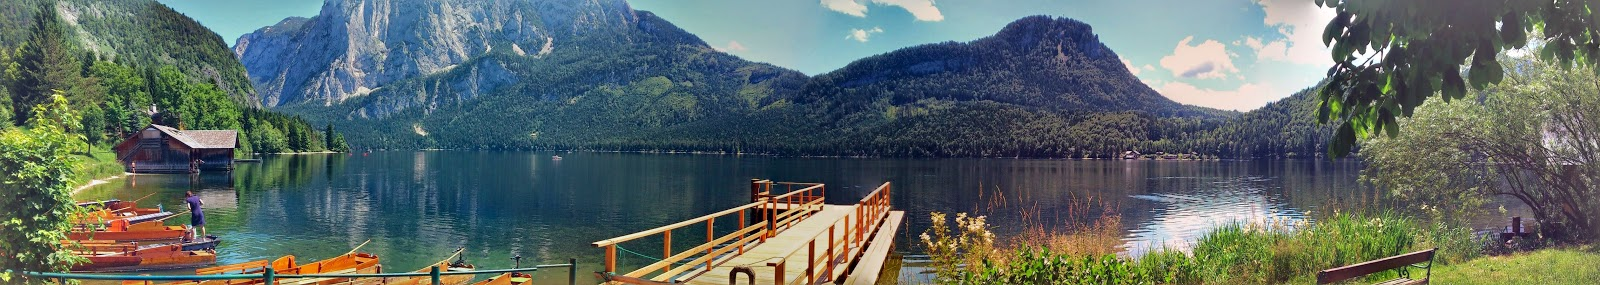 The view at lake Altaussee is particularly stunning and very peaceful.